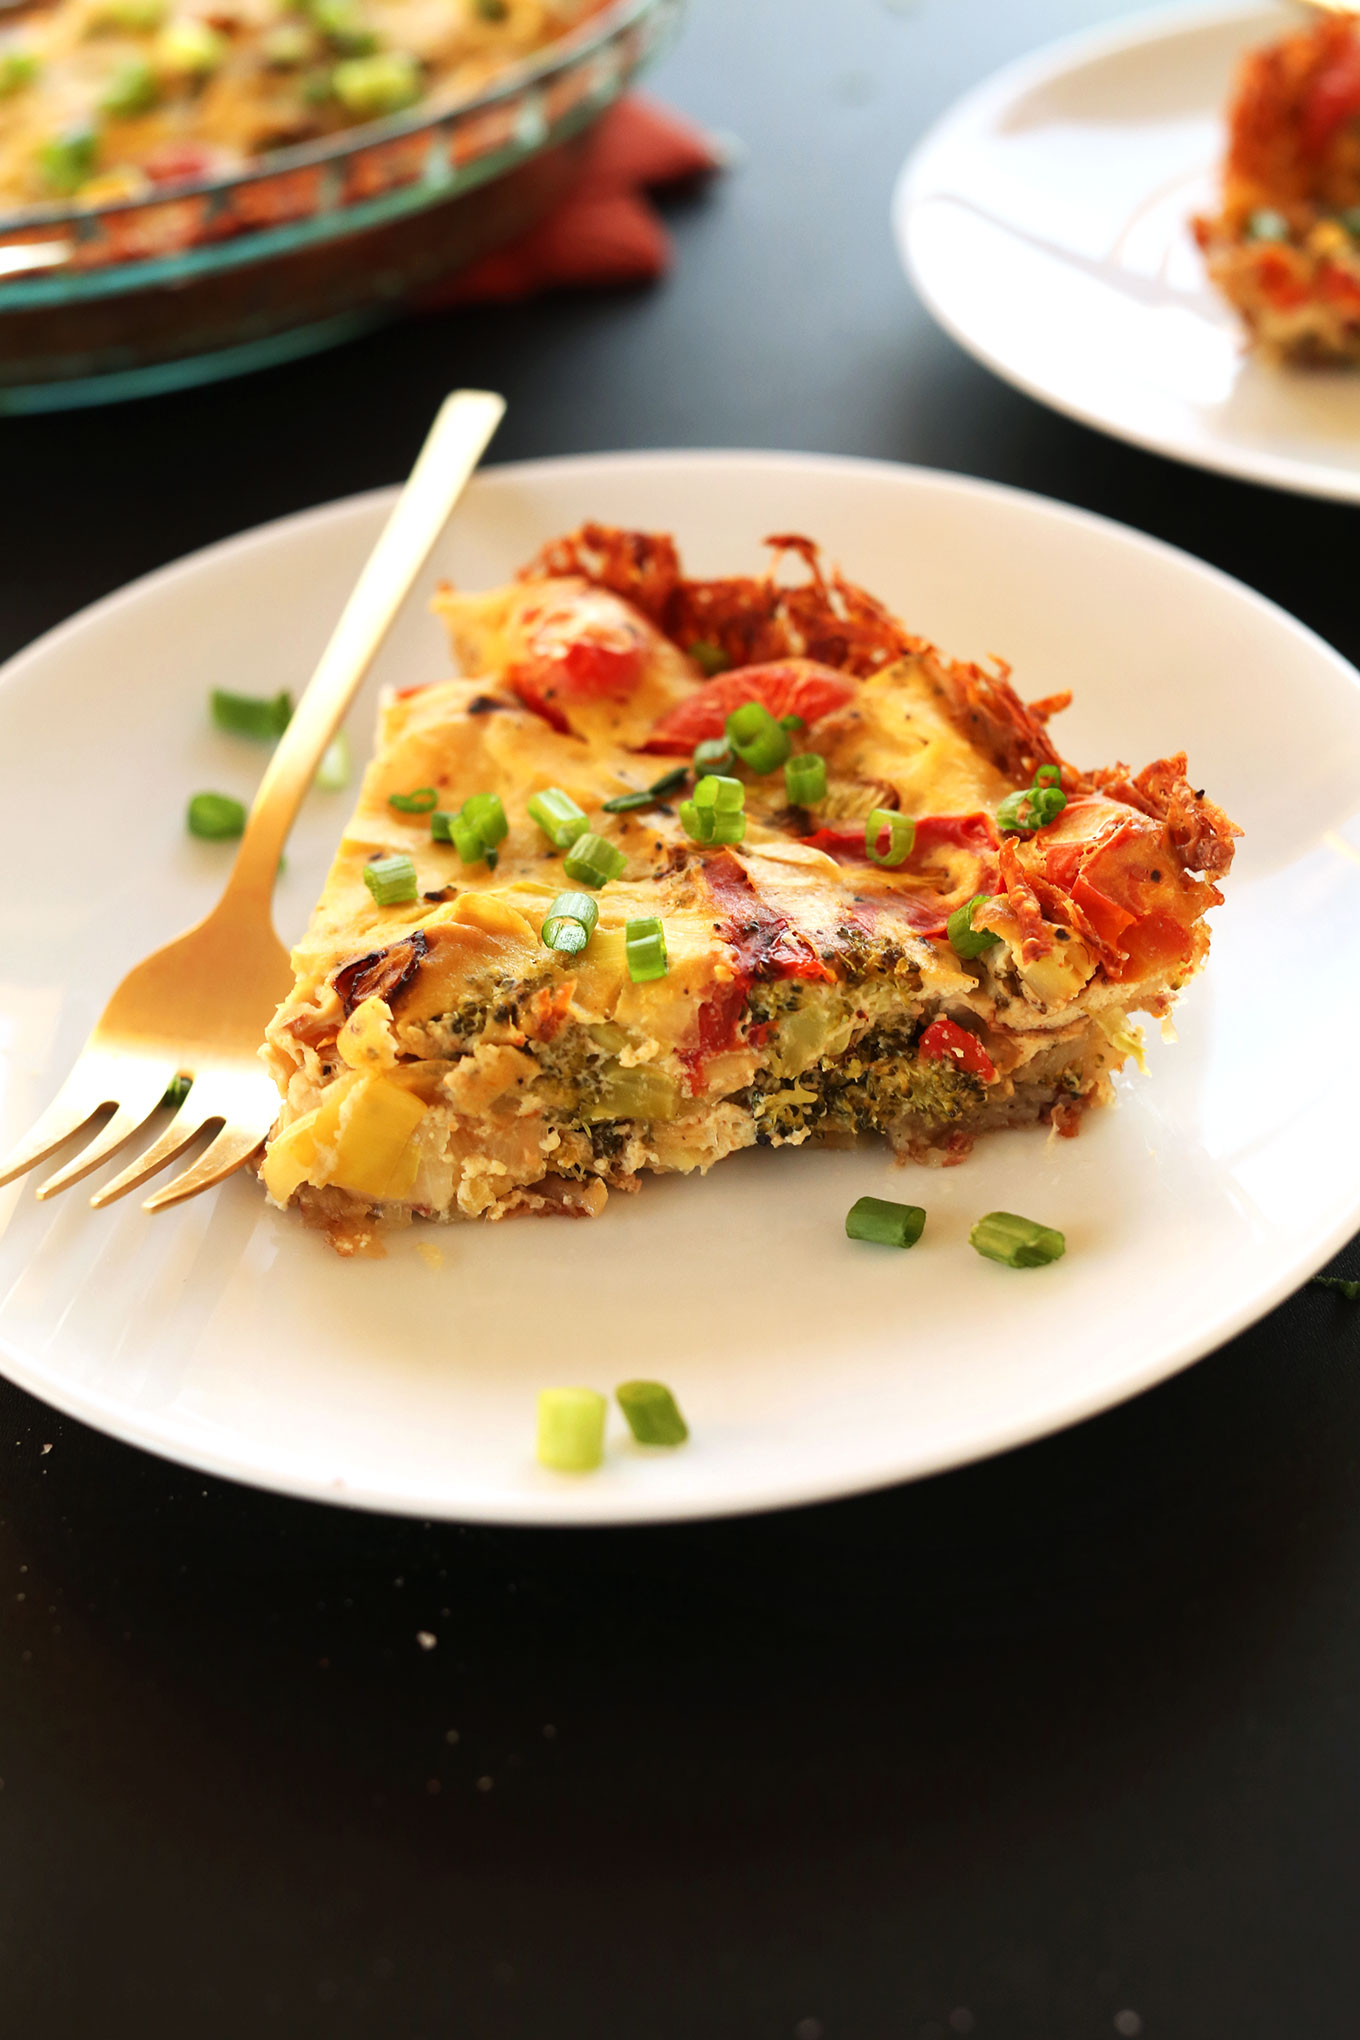 breakfast vegan broccoli quiche broccoli traditionally hated by ...